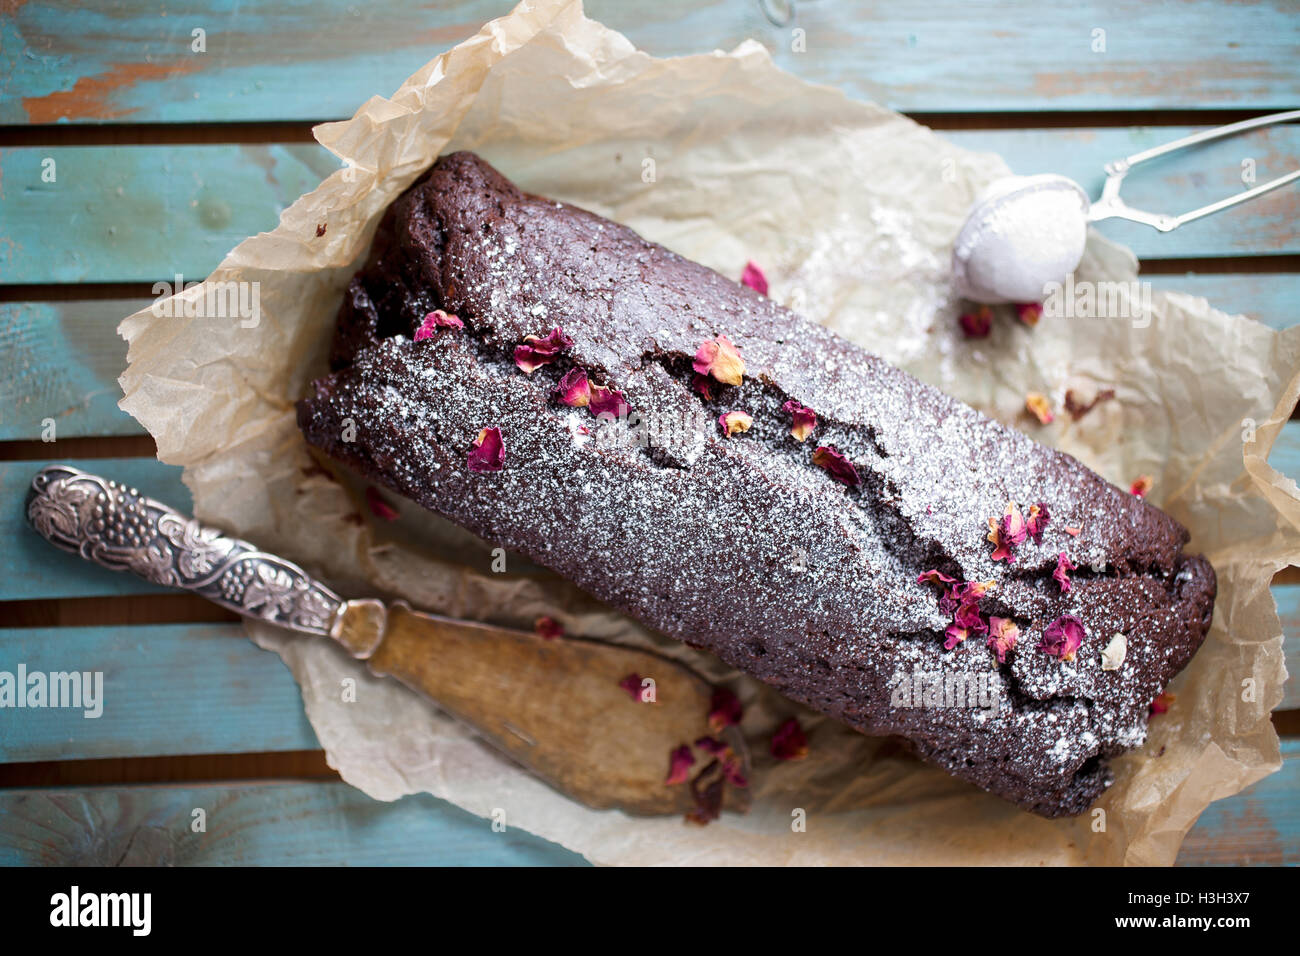 Homemade chocolate banana loaf with dried roses - Stock Image